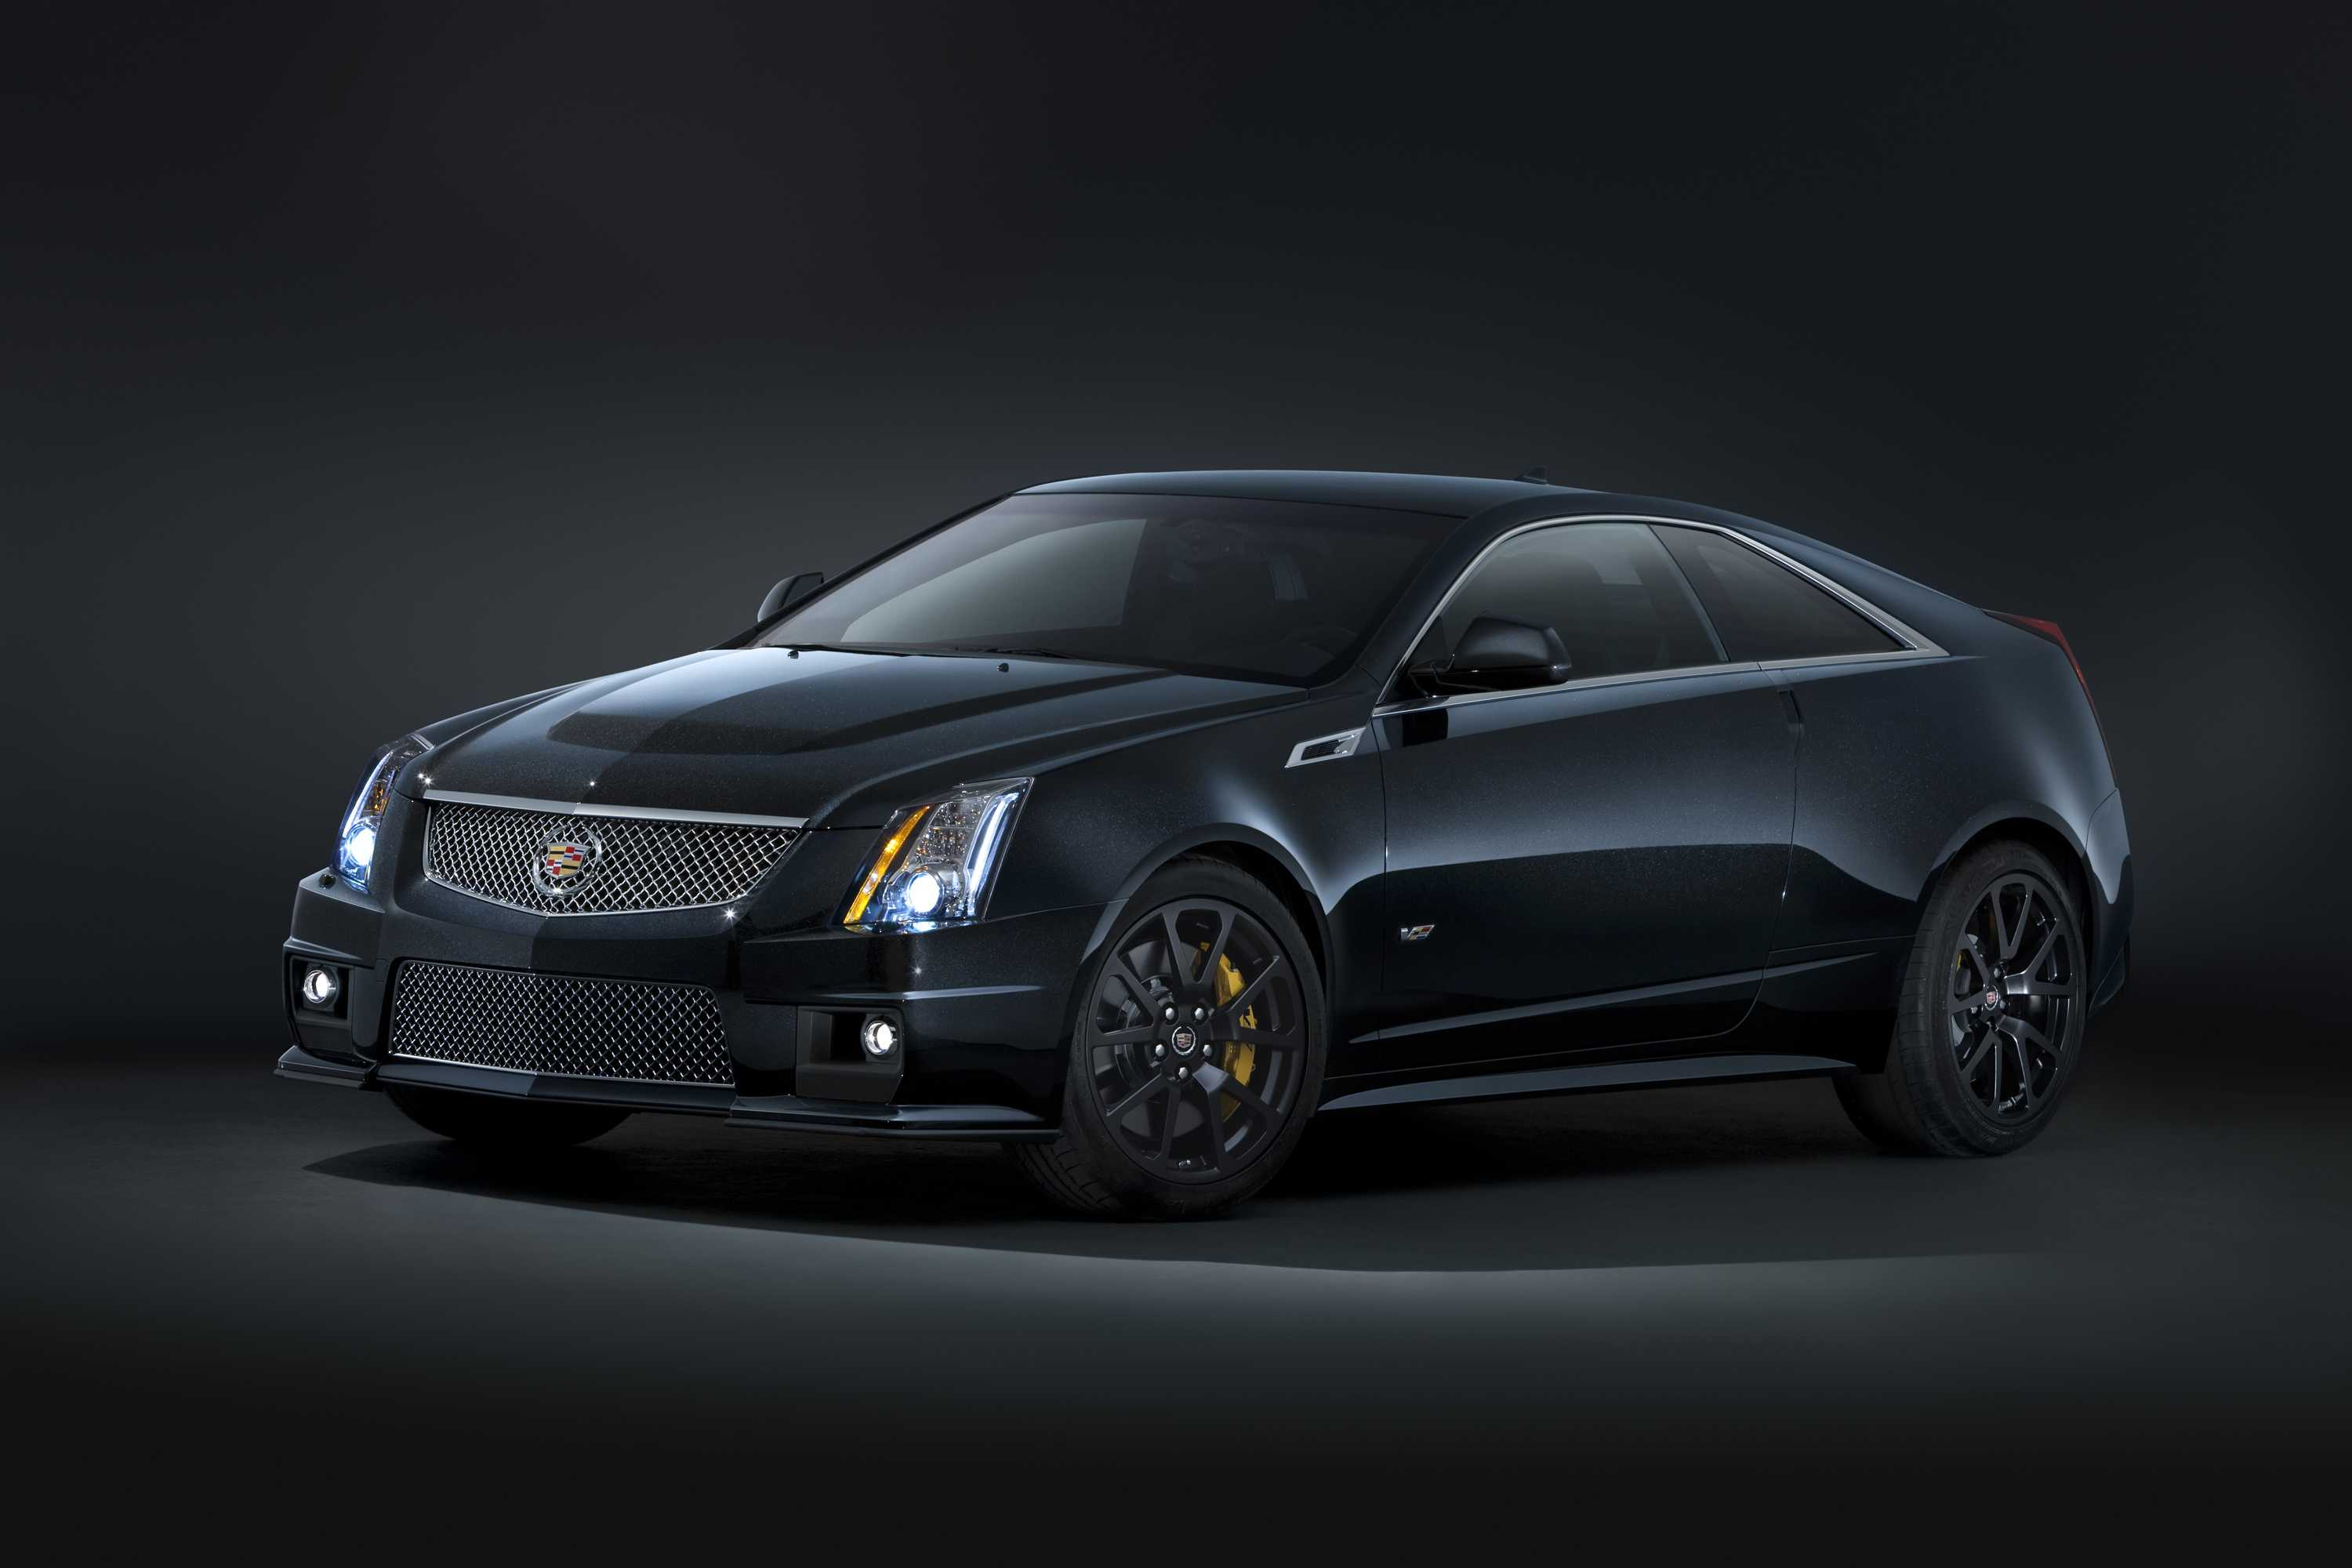 cadillac-cts-coupe-front-side-0-320266 Great Description About 2012 Cts-v for Sale with Inspiring Images Cars Review